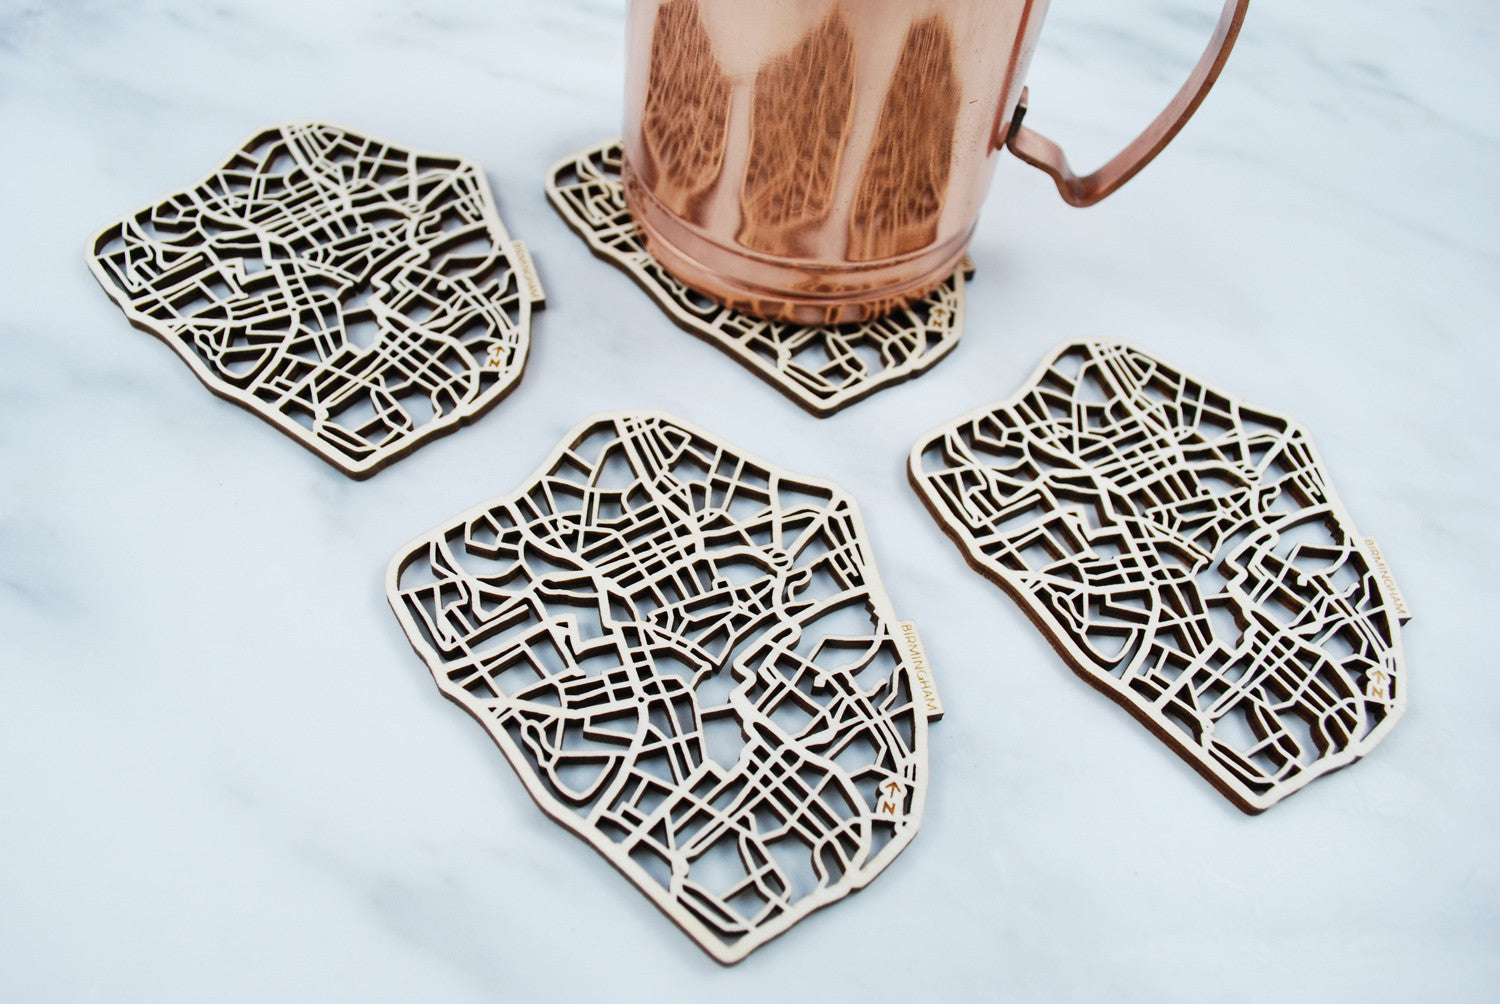 Birmingham Map Coasters (set of 4)